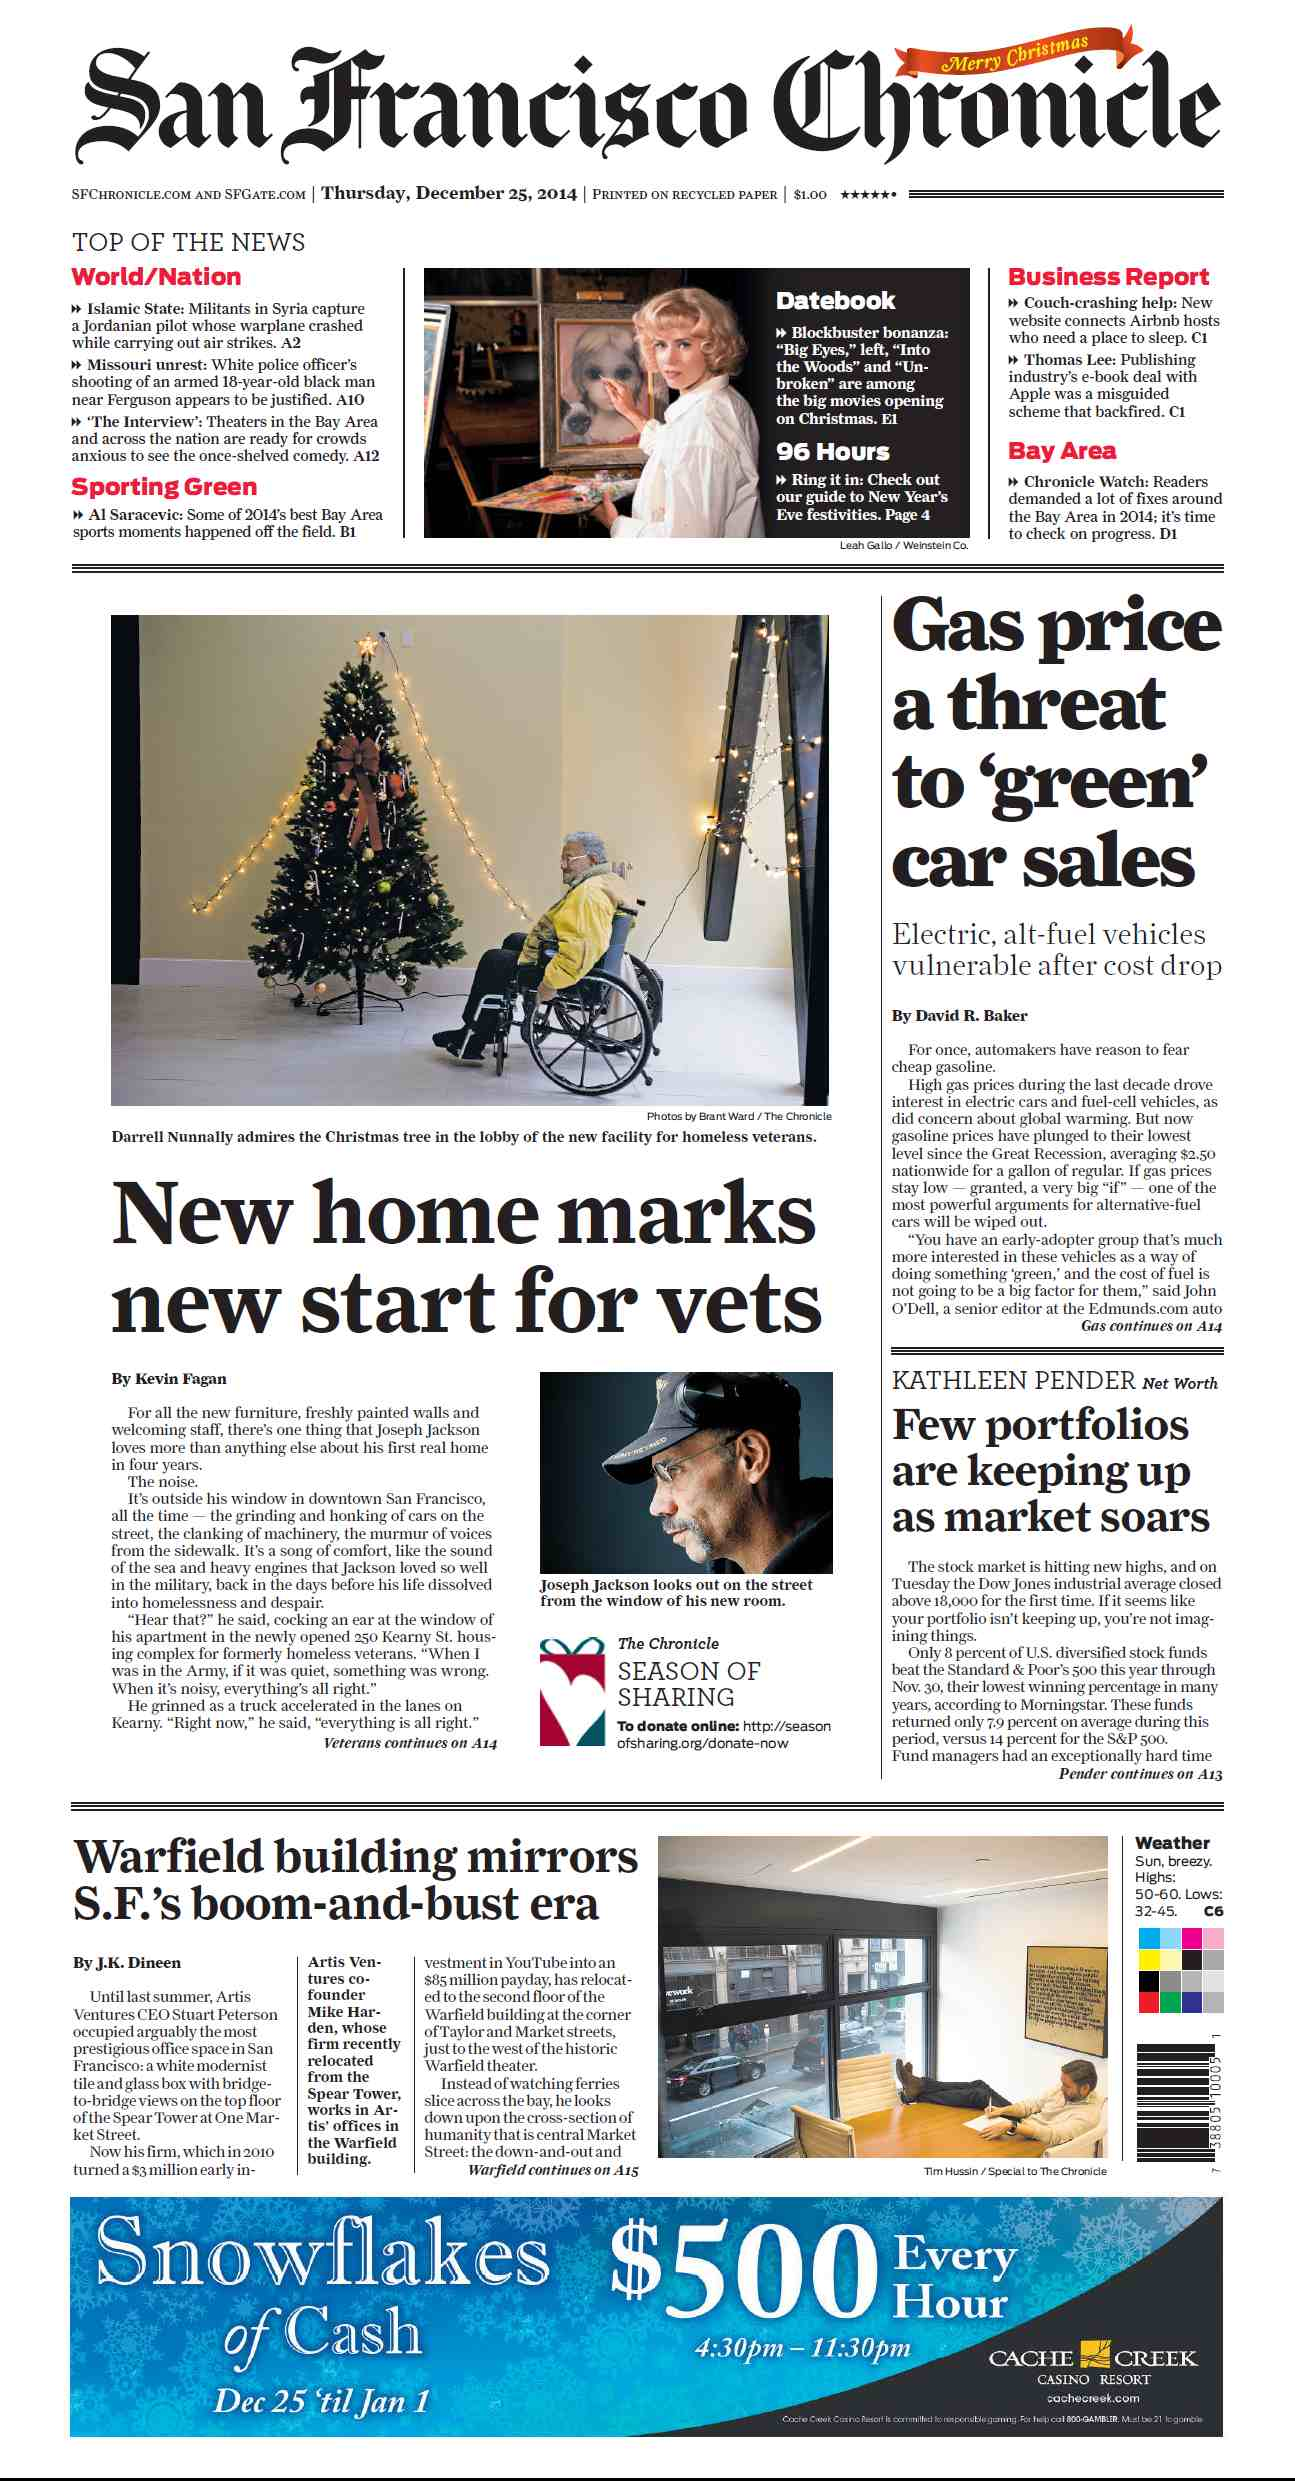 San Francisco Chronicle - December 25, 2014 free download